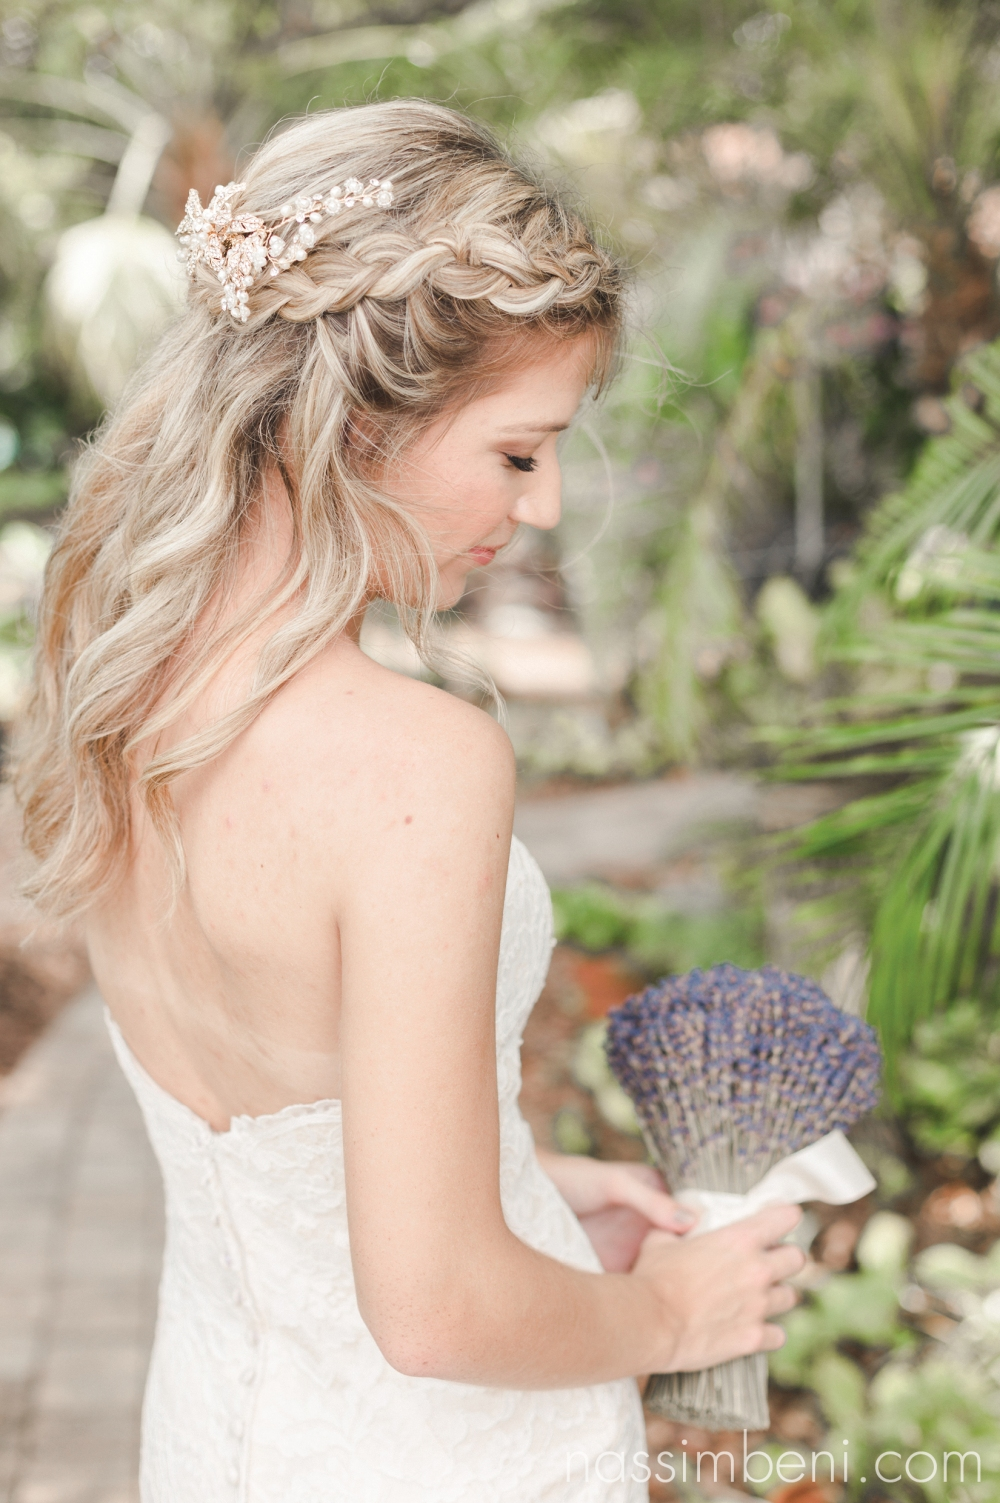 backyard-florida-private-venue-wedding-nassimbeni-photography-40